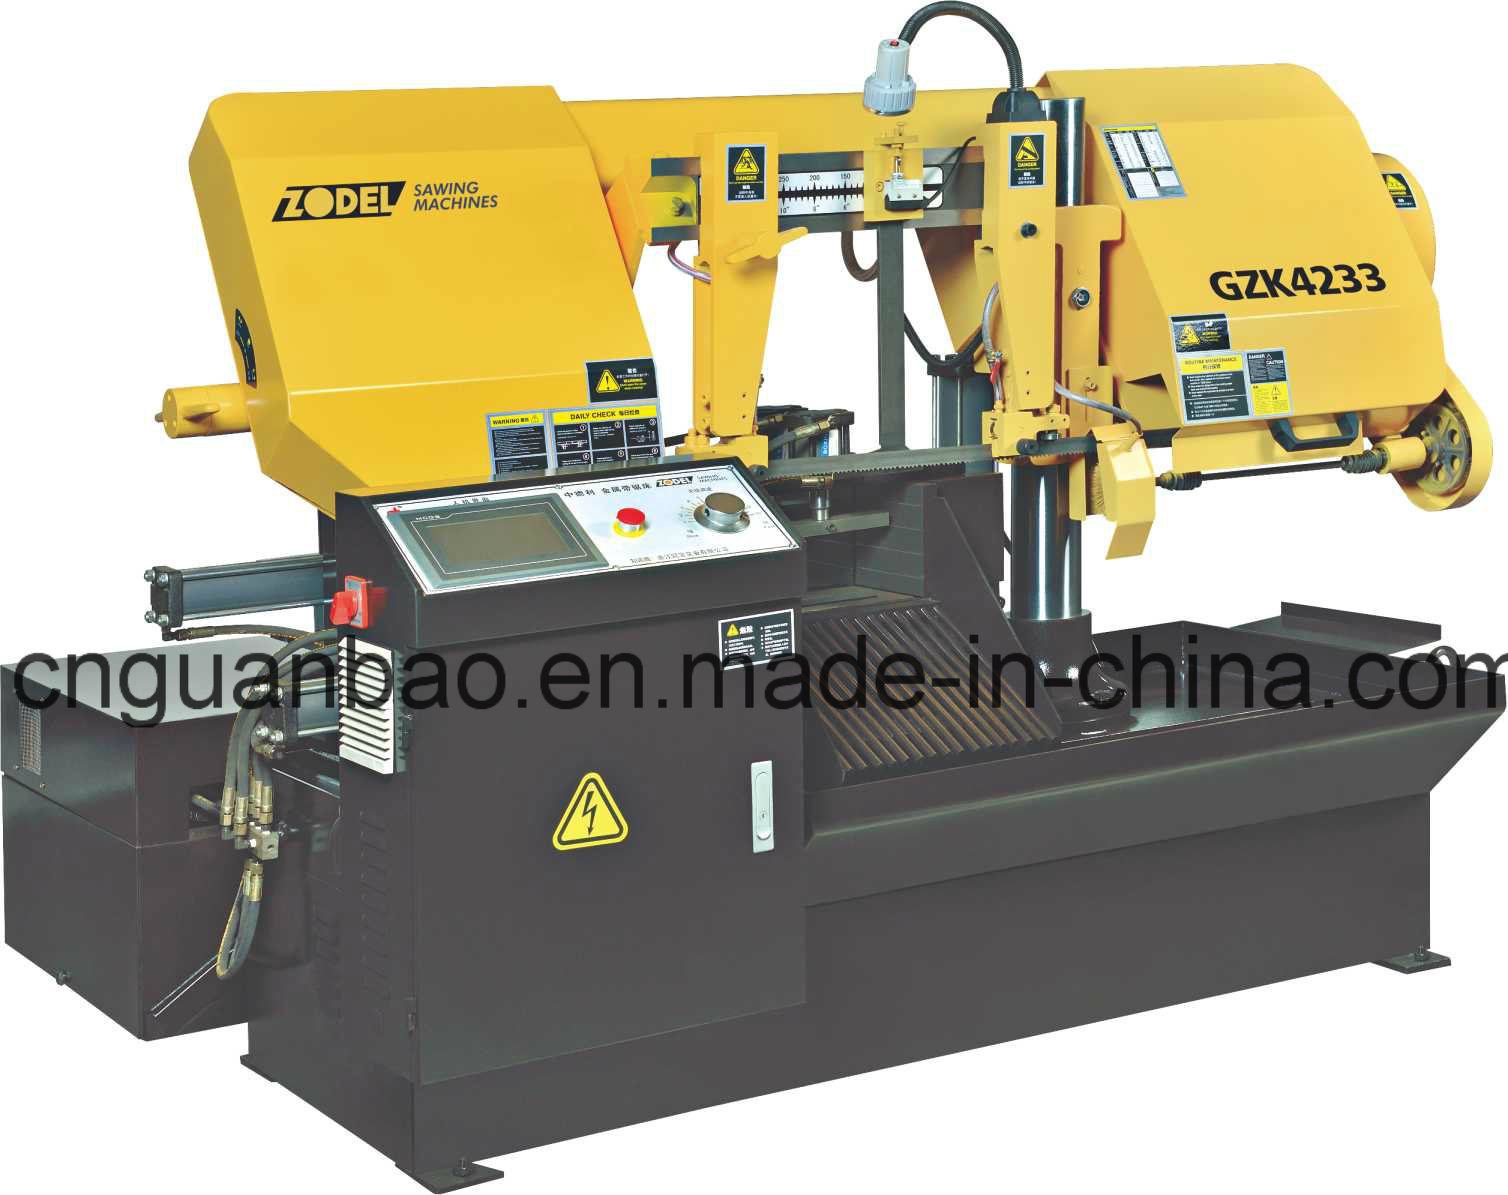 CNC Band Saw Machine Gzk4233 with ISO CE Certificate